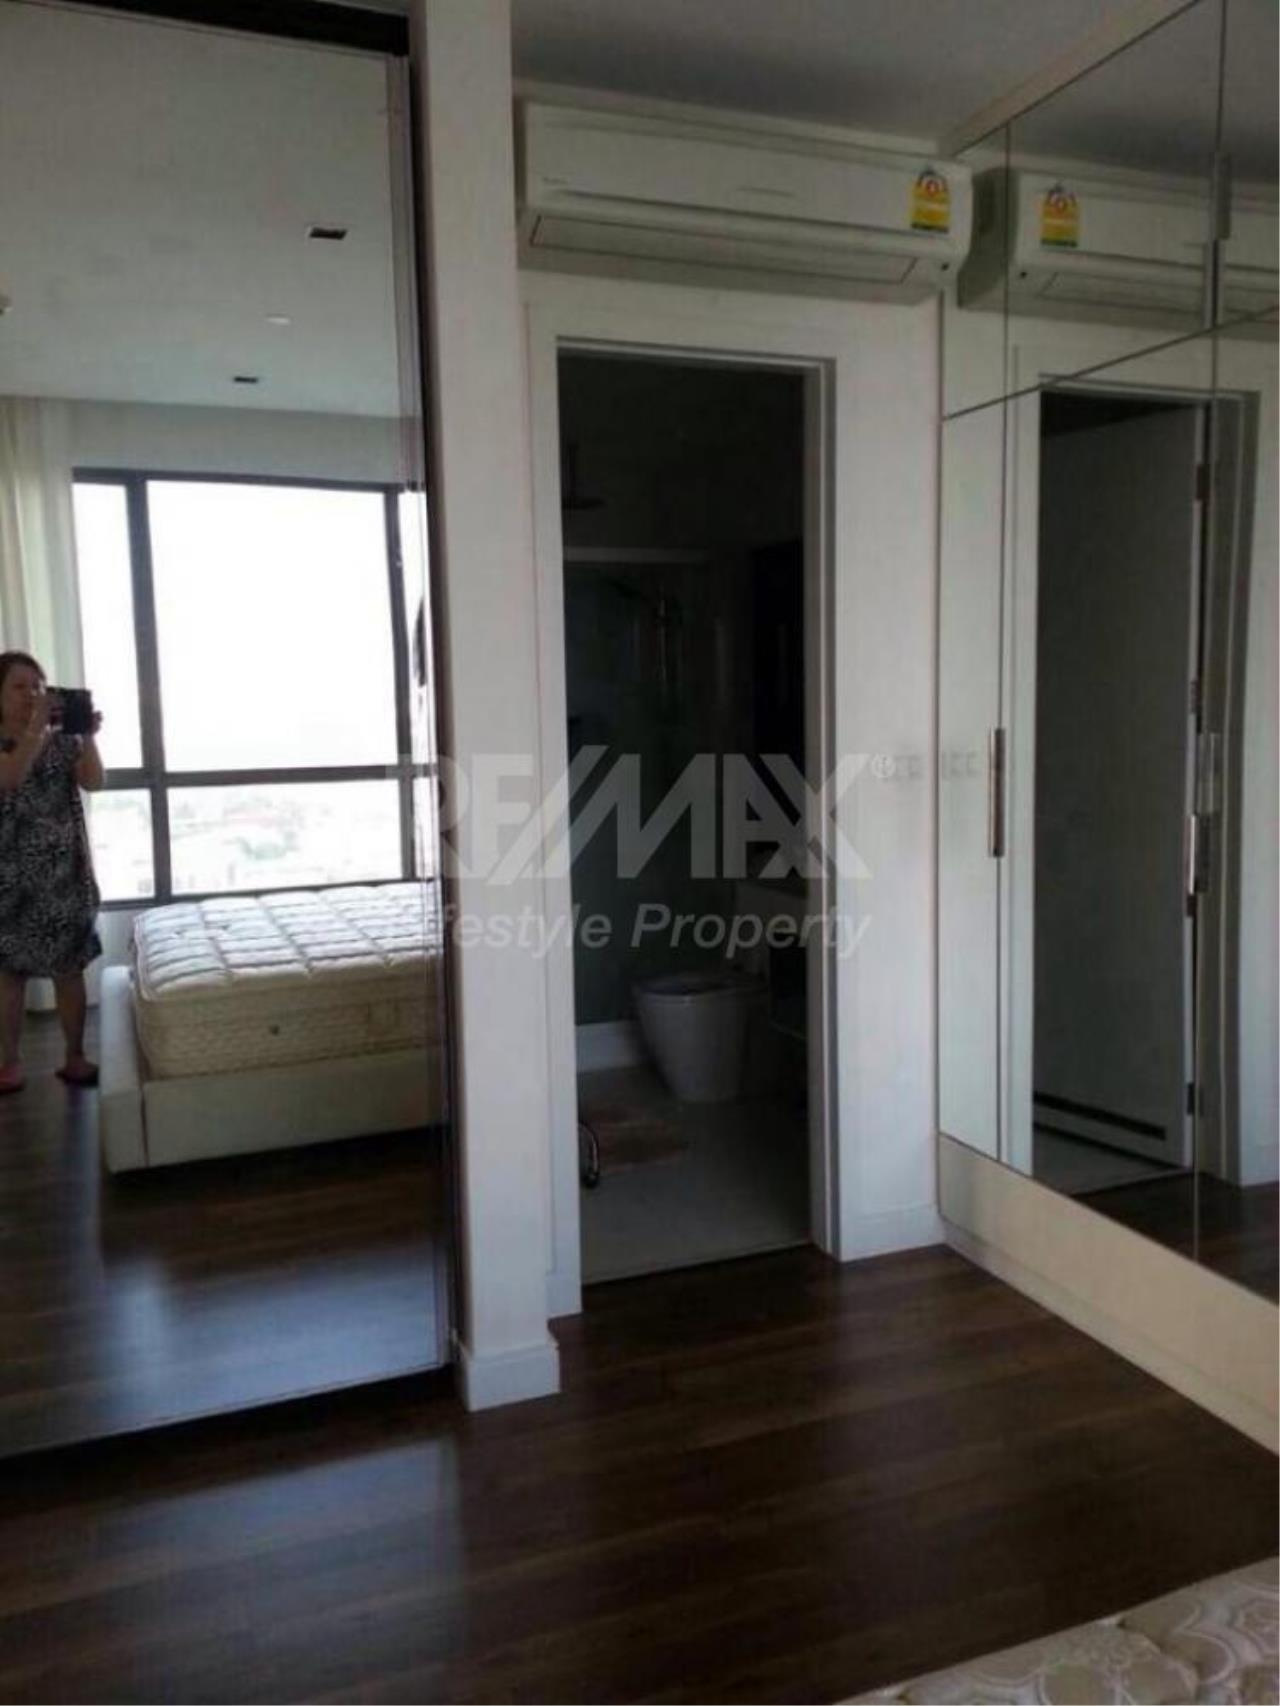 RE/MAX LifeStyle Property Agency's The Room Sukhumvit 62 12